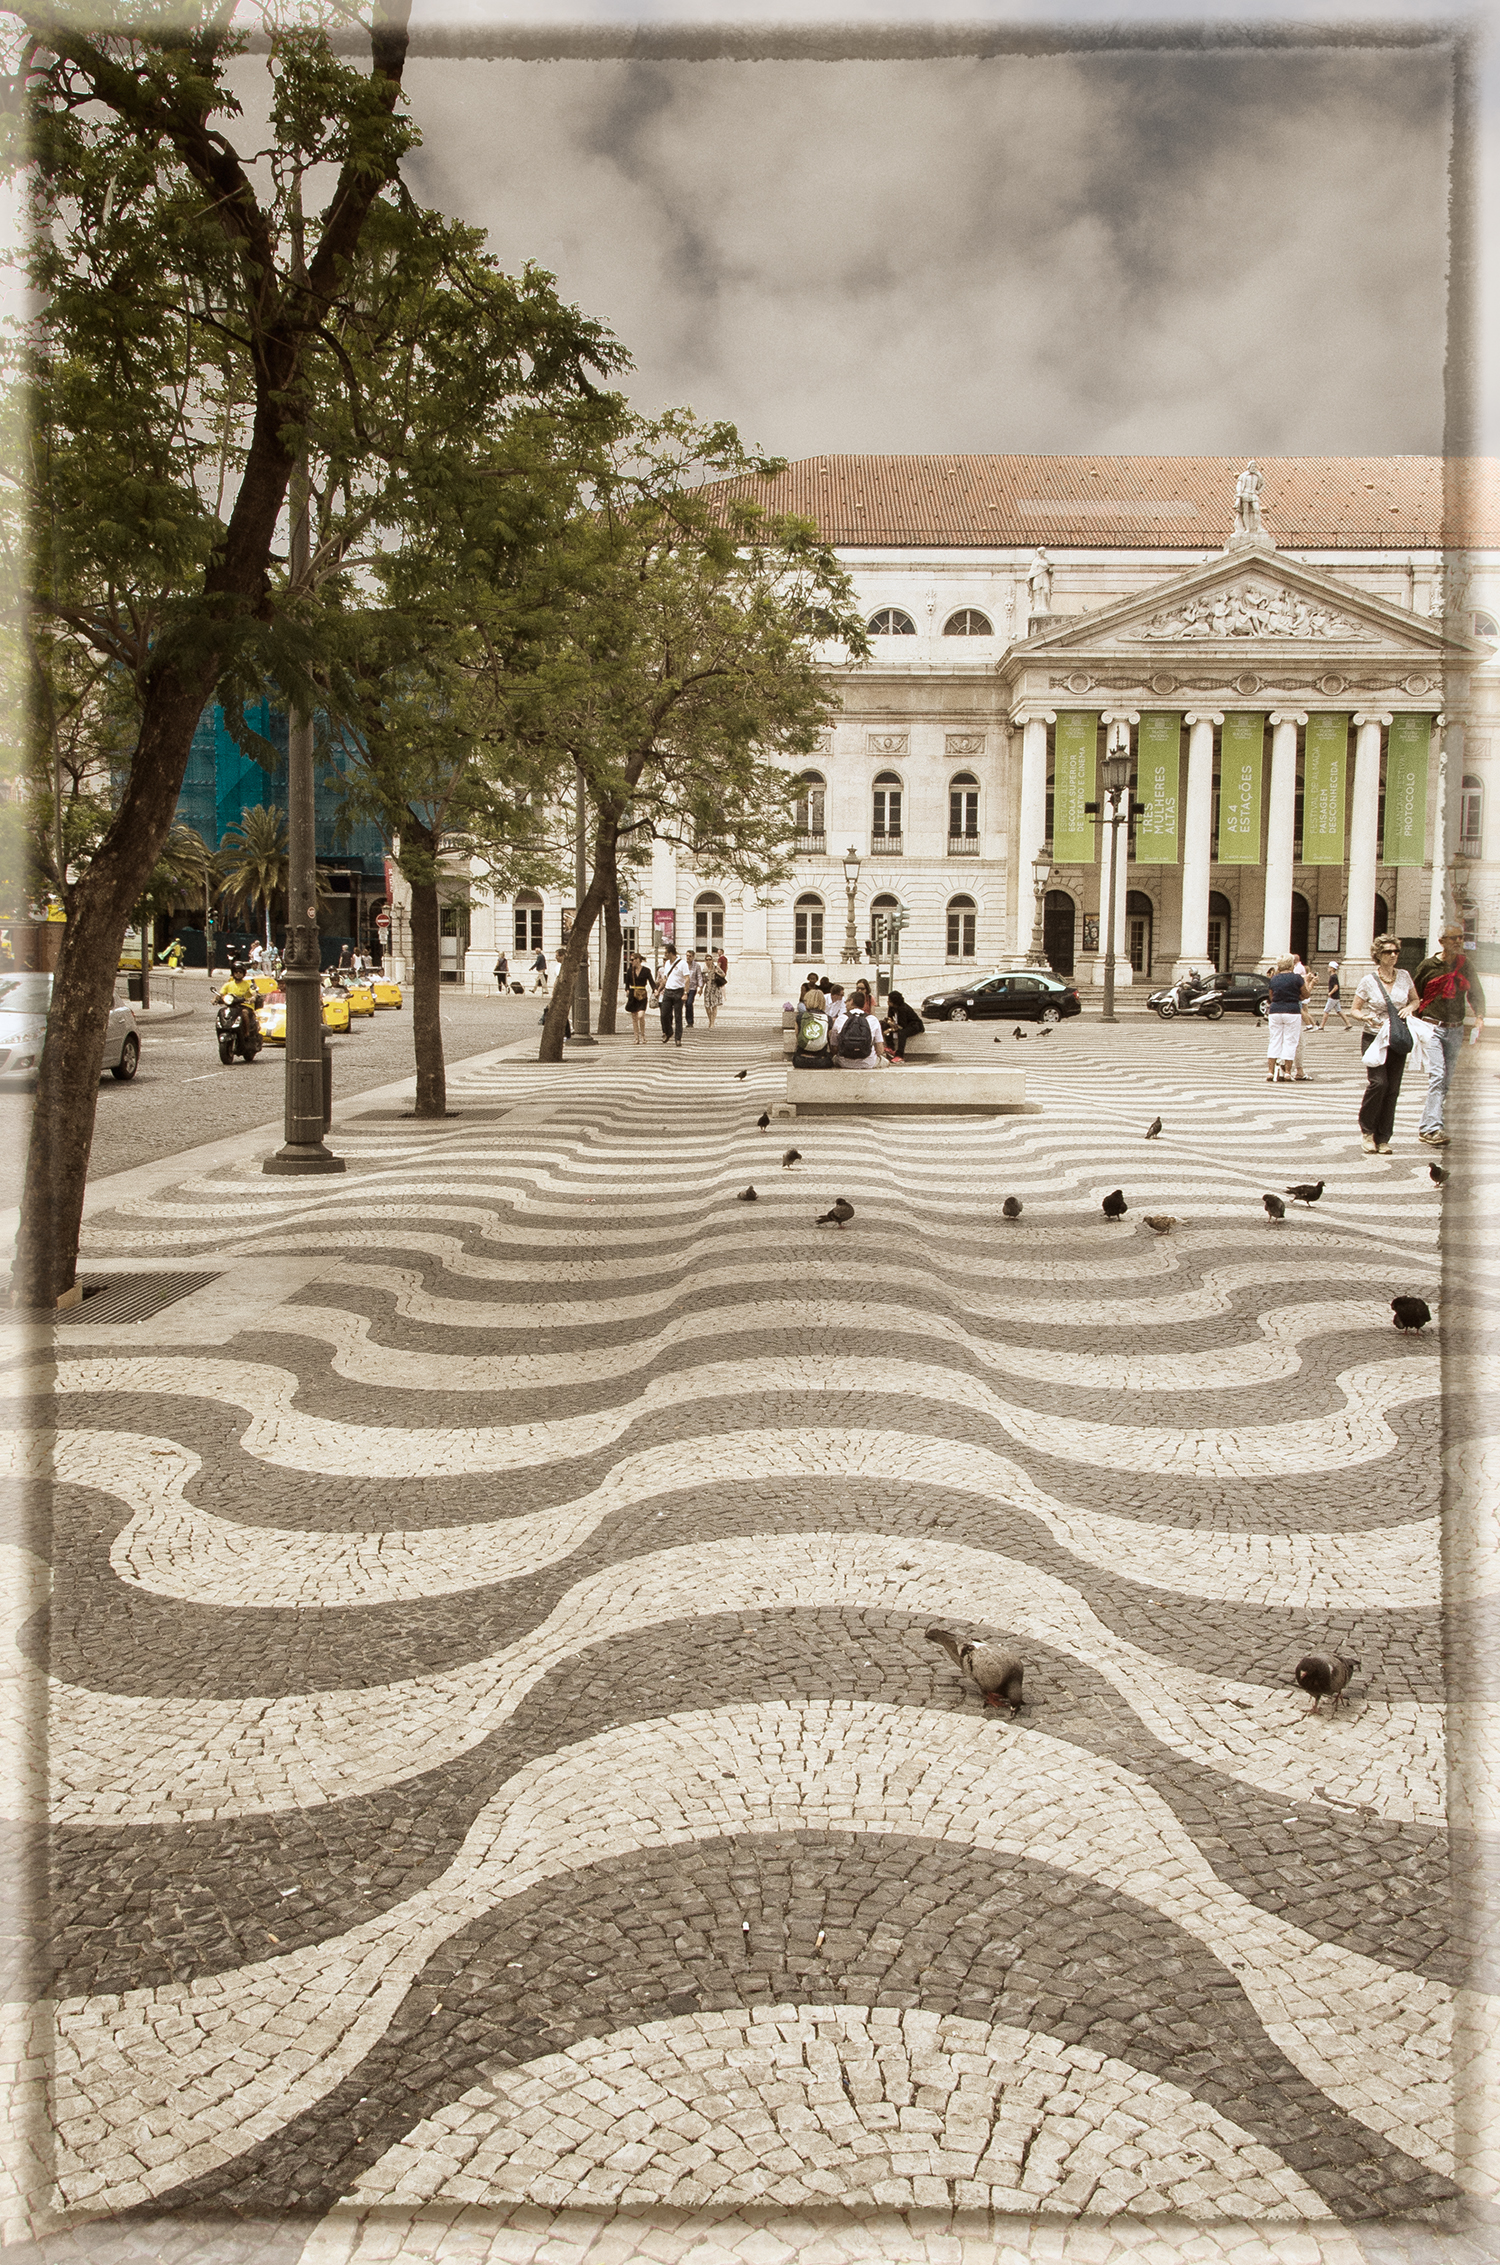 Mosaic Pavement at Rossi Square